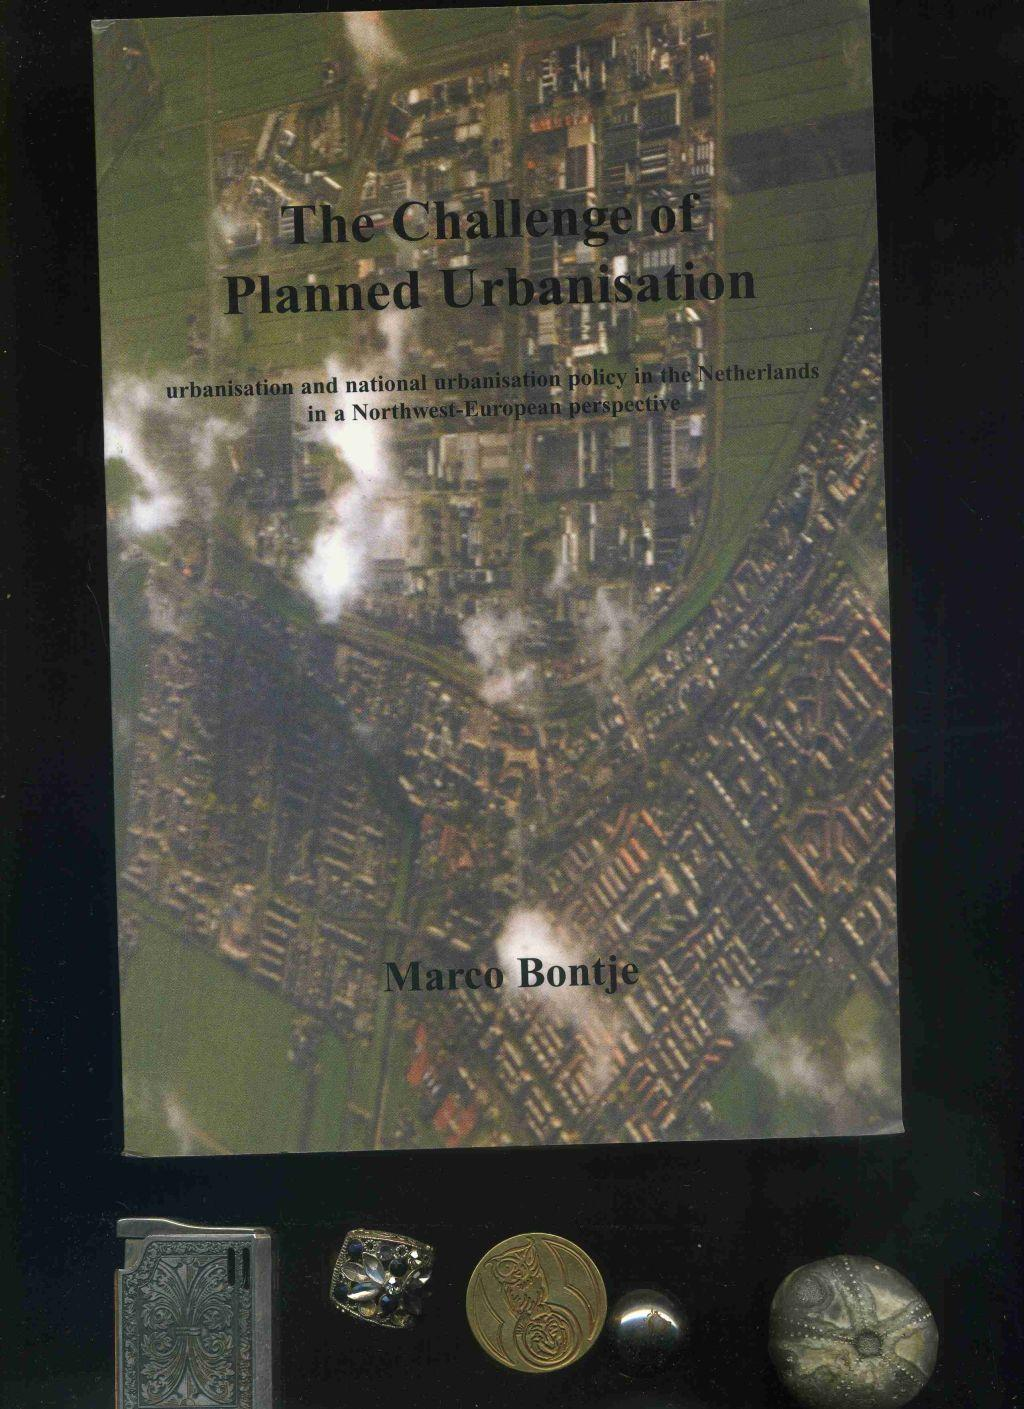 Challenge of Planned Urbanisation: Urbanisation and Nat'l